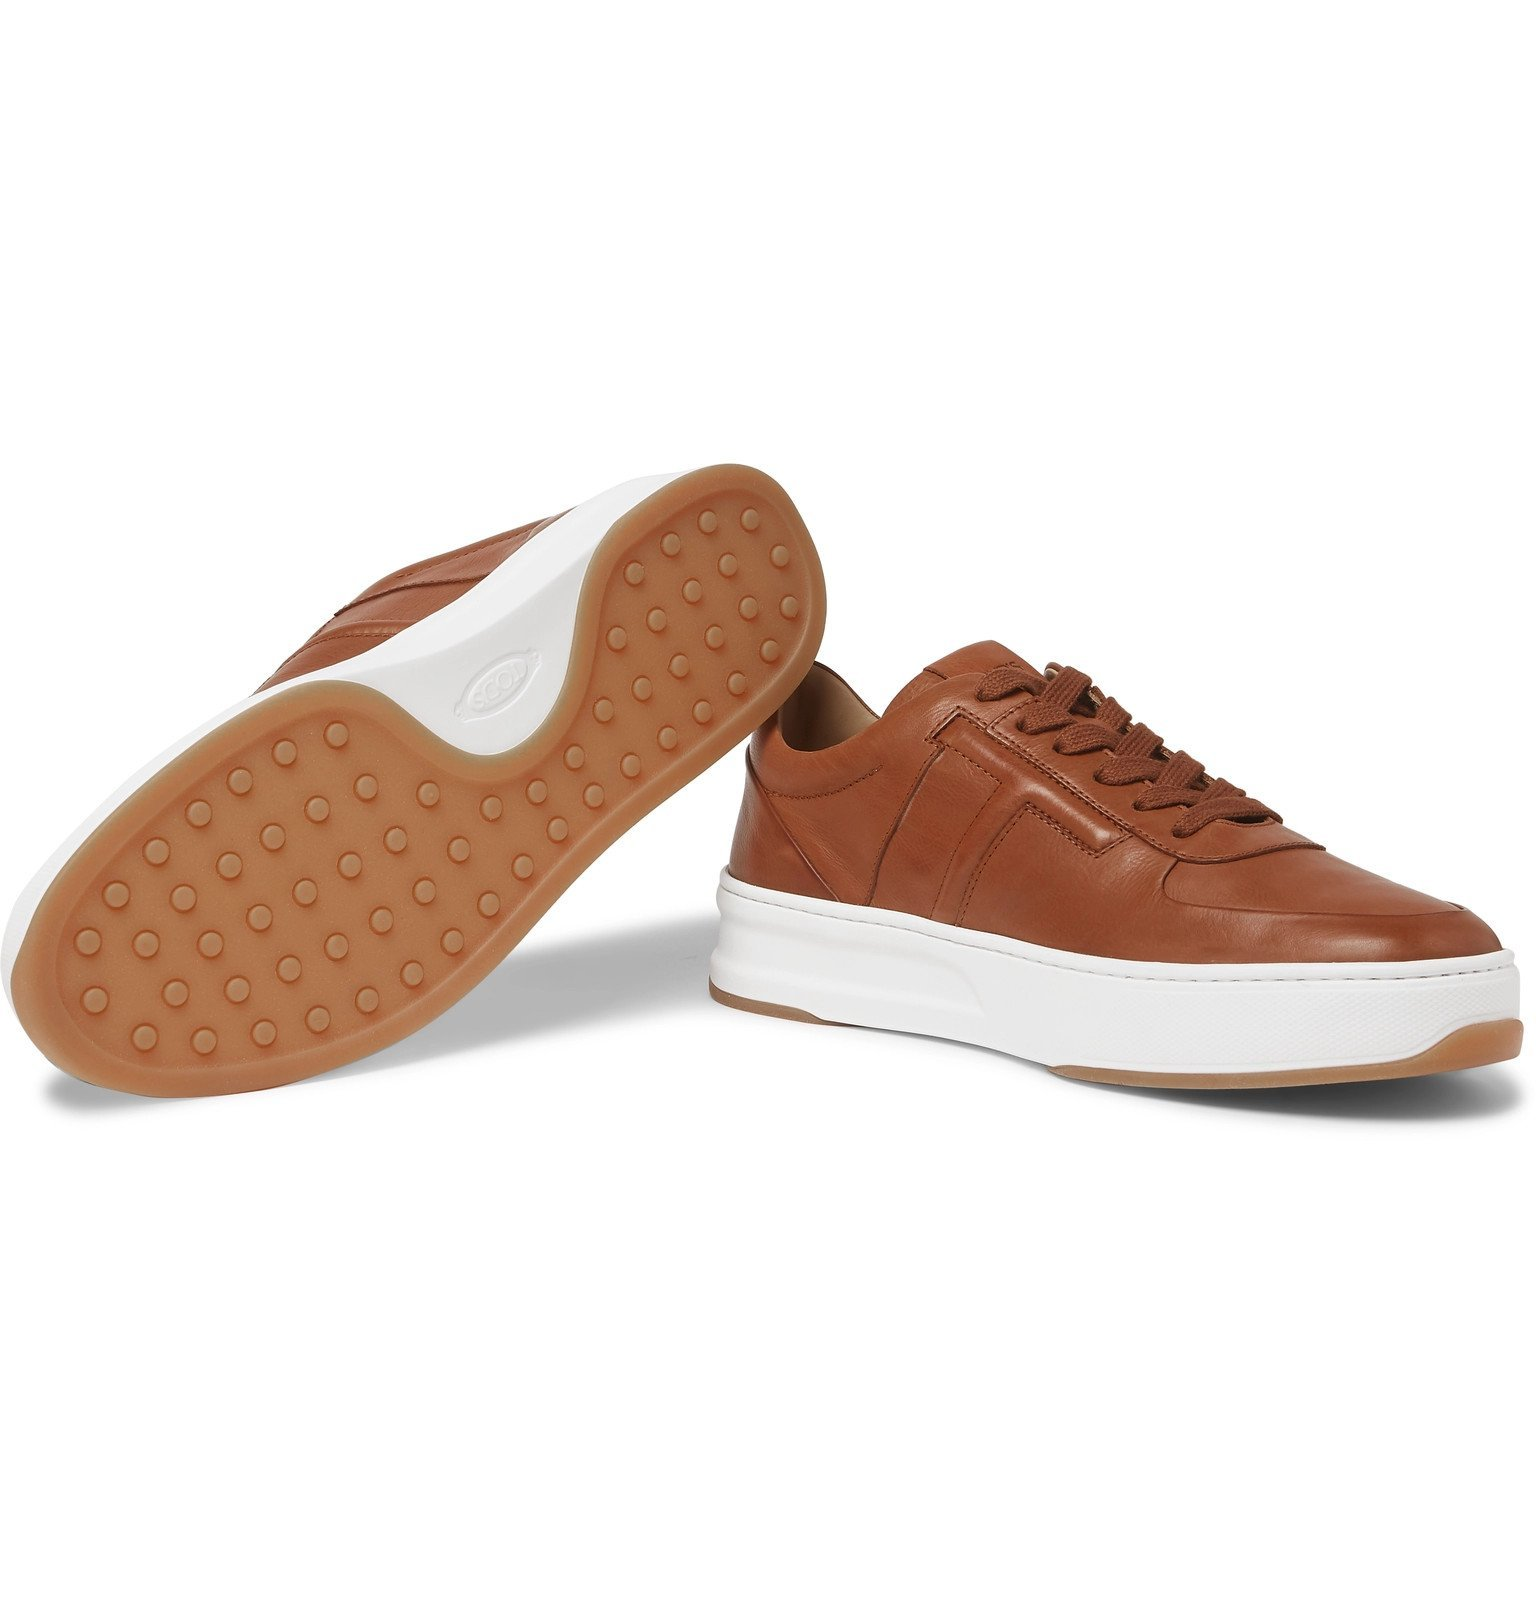 Tod's - Cassetta Leather Sneakers - Brown